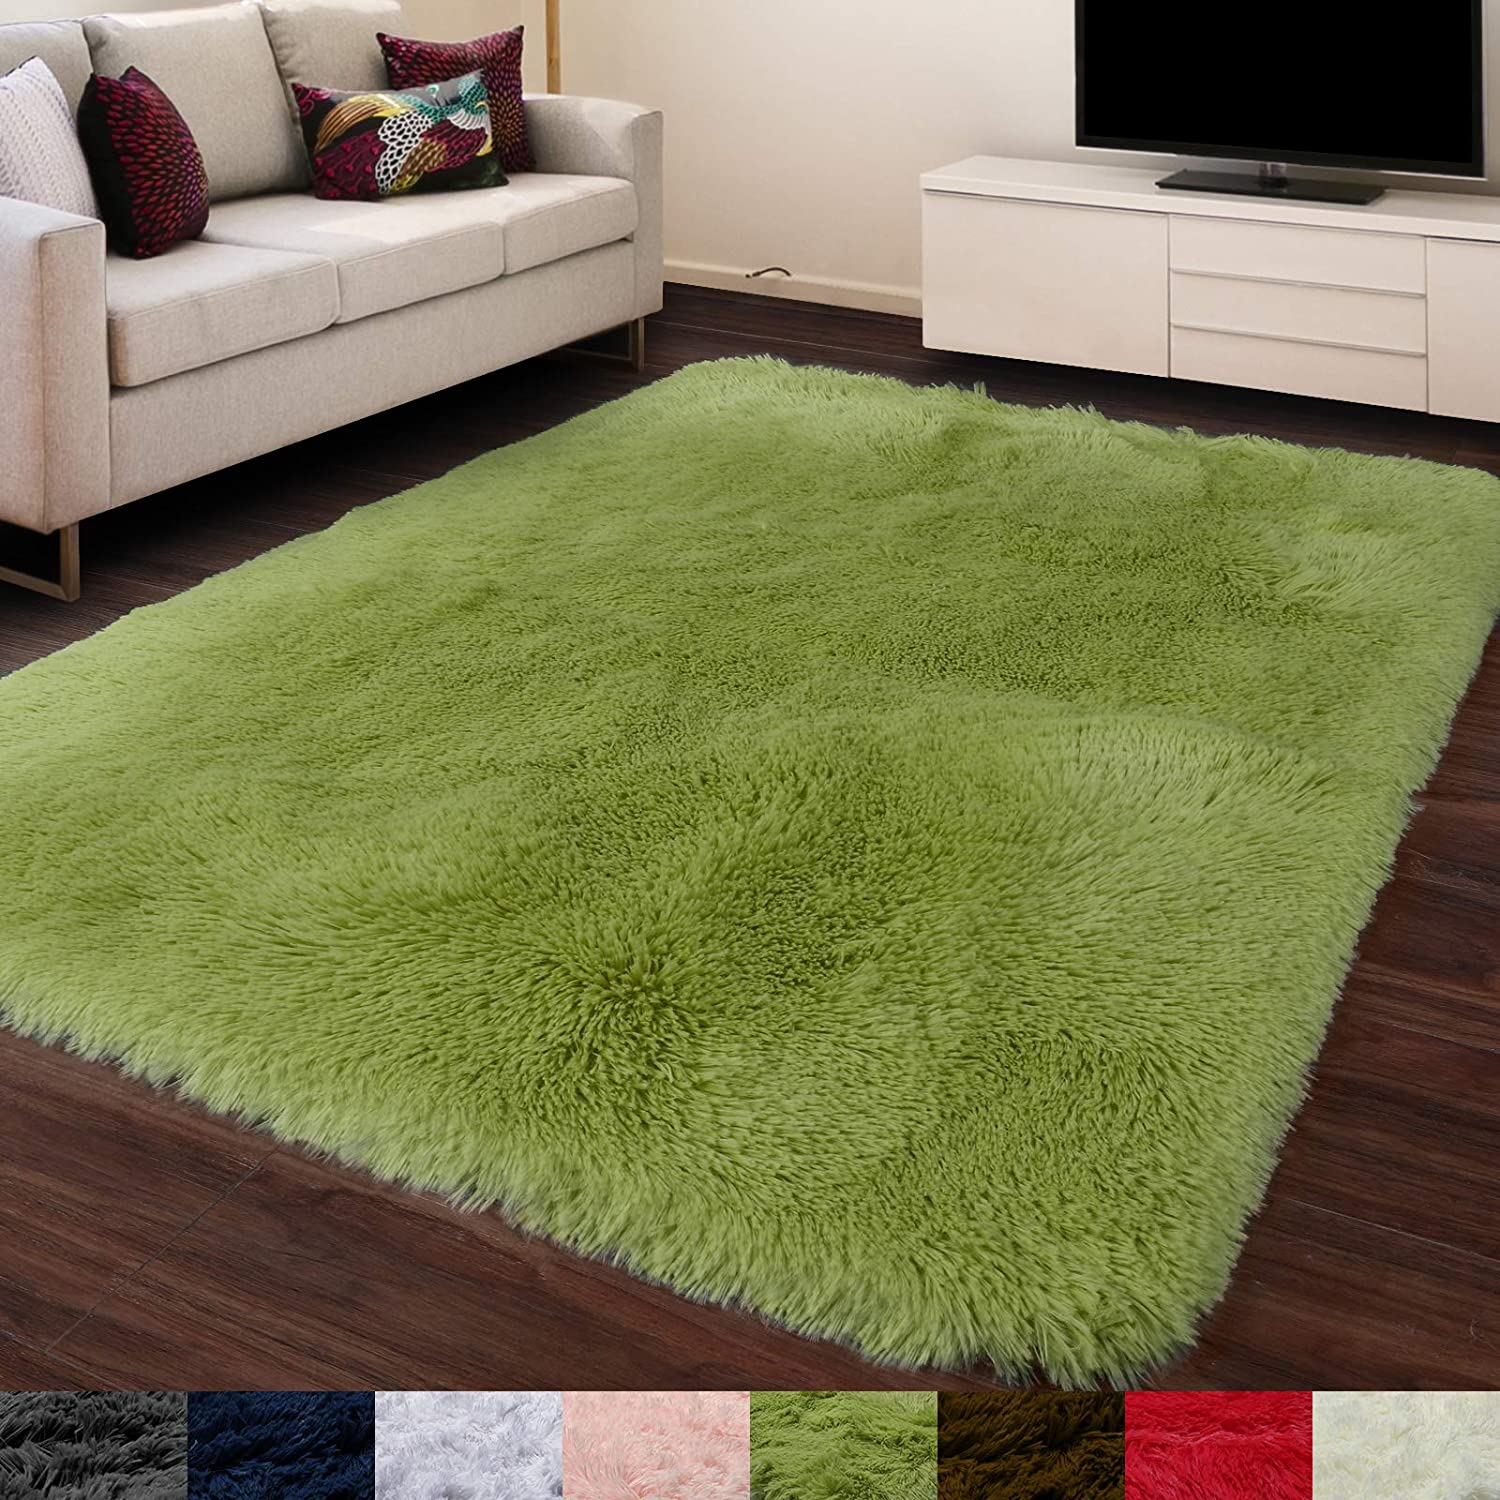 Buy Grass Green Soft Rug For Bedroom 4 X6 Fluffy Area Rug For Living Room Furry Carpet For Kids Room Shaggy Throw Rug For Nursery Room Fuzzy Plush Rug Green Carpet Rectangle Cute